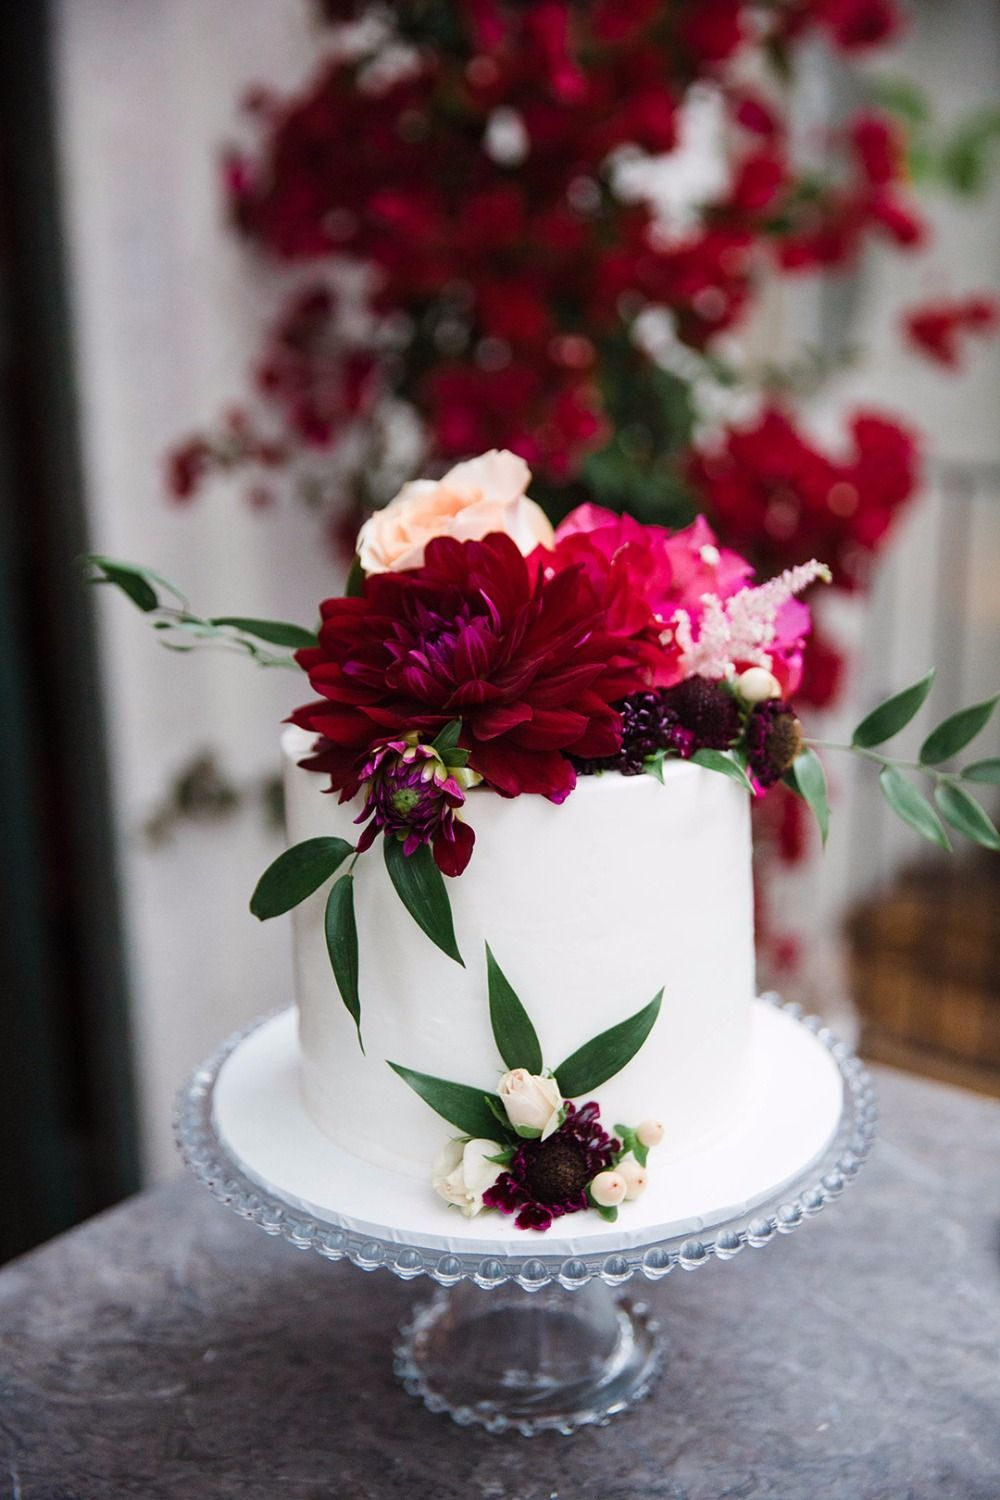 Wedding decorations garden theme december 2018 Sweetheart wedding cake with red pink and peach florals  Wedding